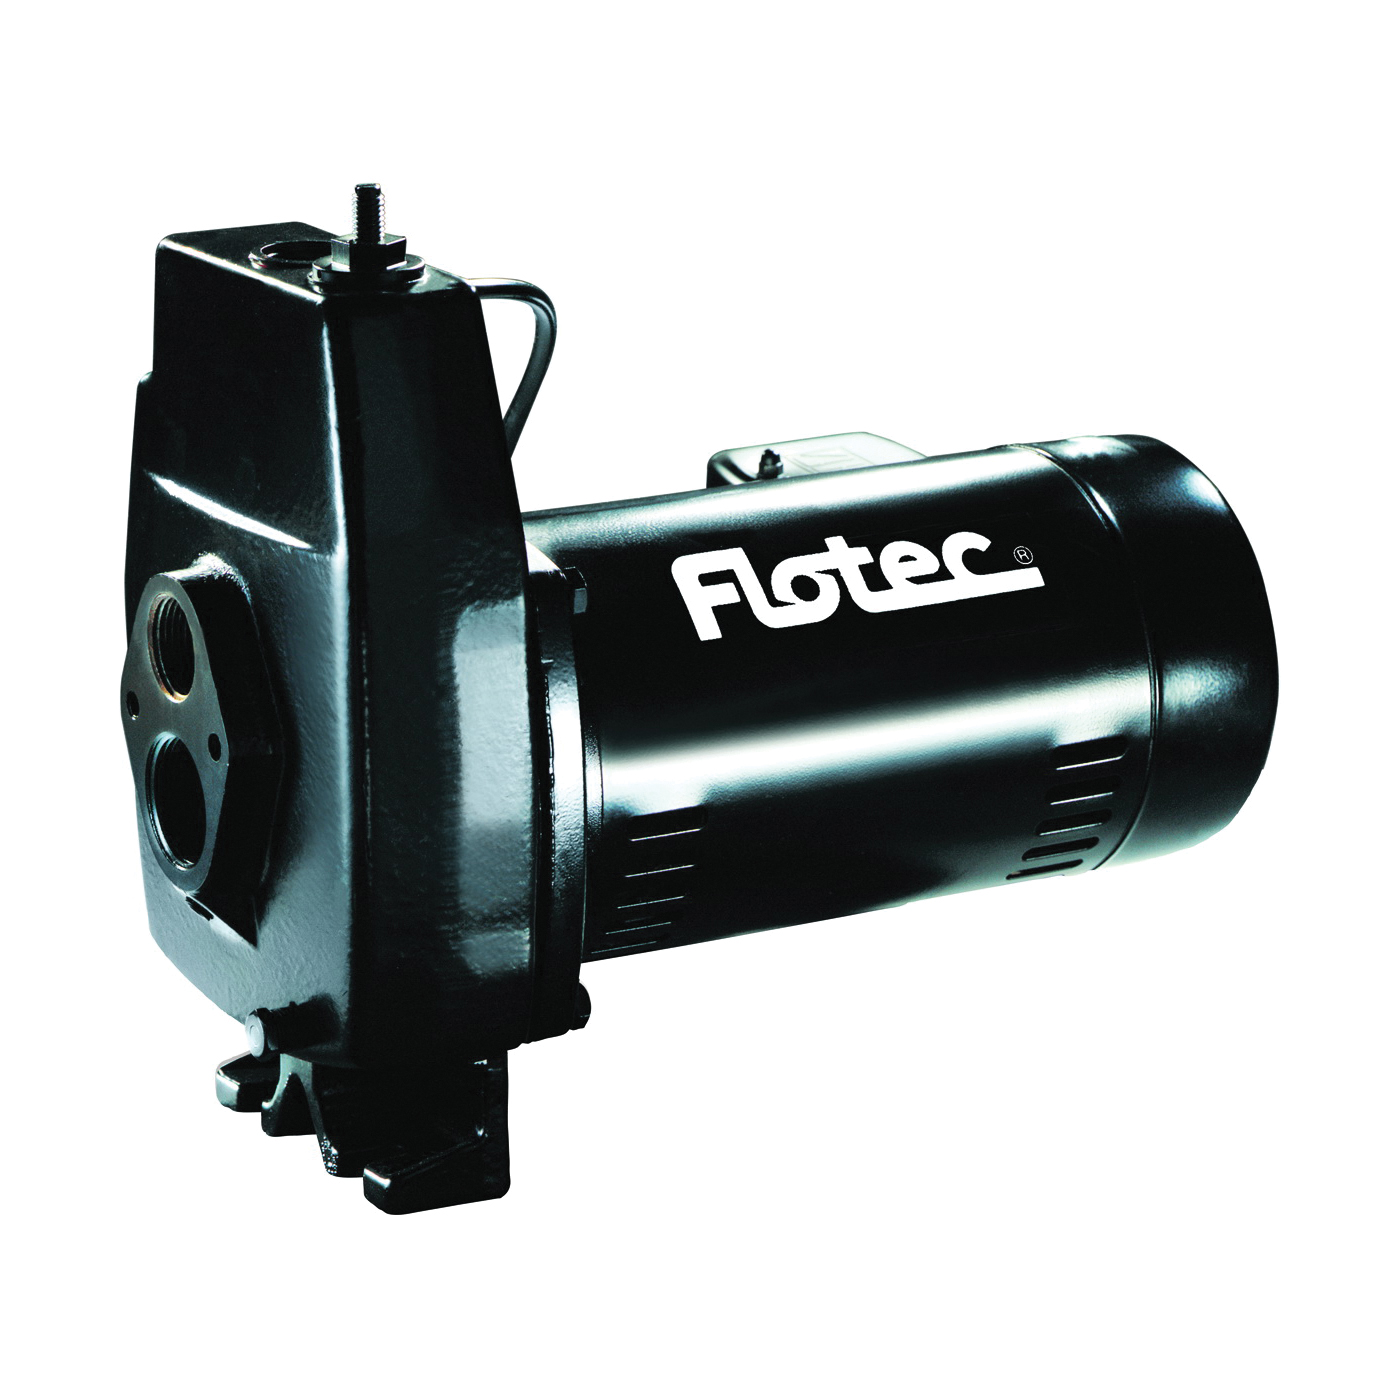 Picture of Flotec FP4222-08 Jet Pump, 6.1/12.2 A, 115/230 V, 0.75 hp, 1-1/4 in Suction, 1 in Discharge Connection, 7.5 gpm